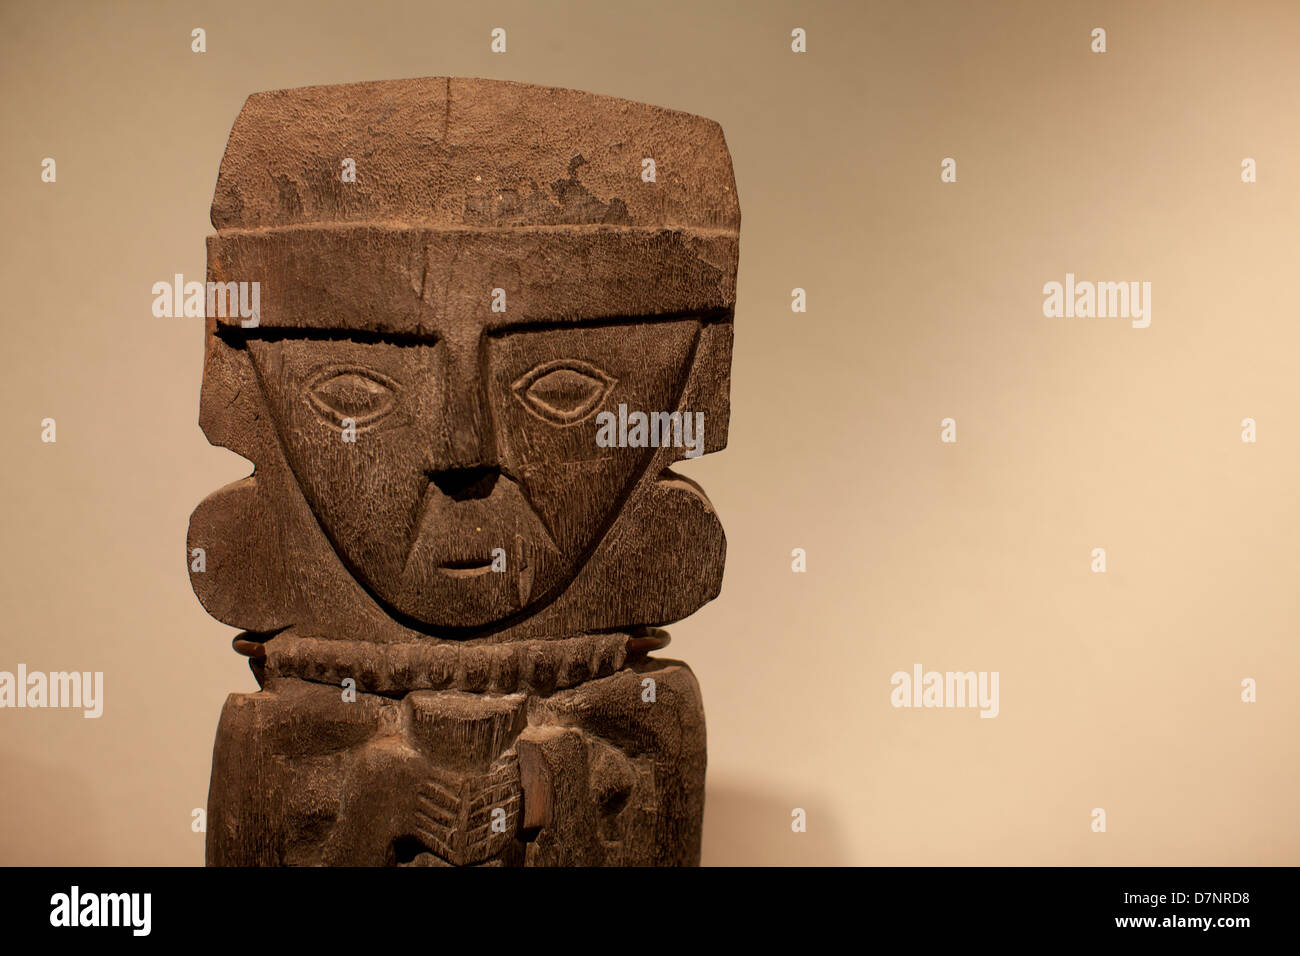 Peruvian wooden sculpture - Stock Image